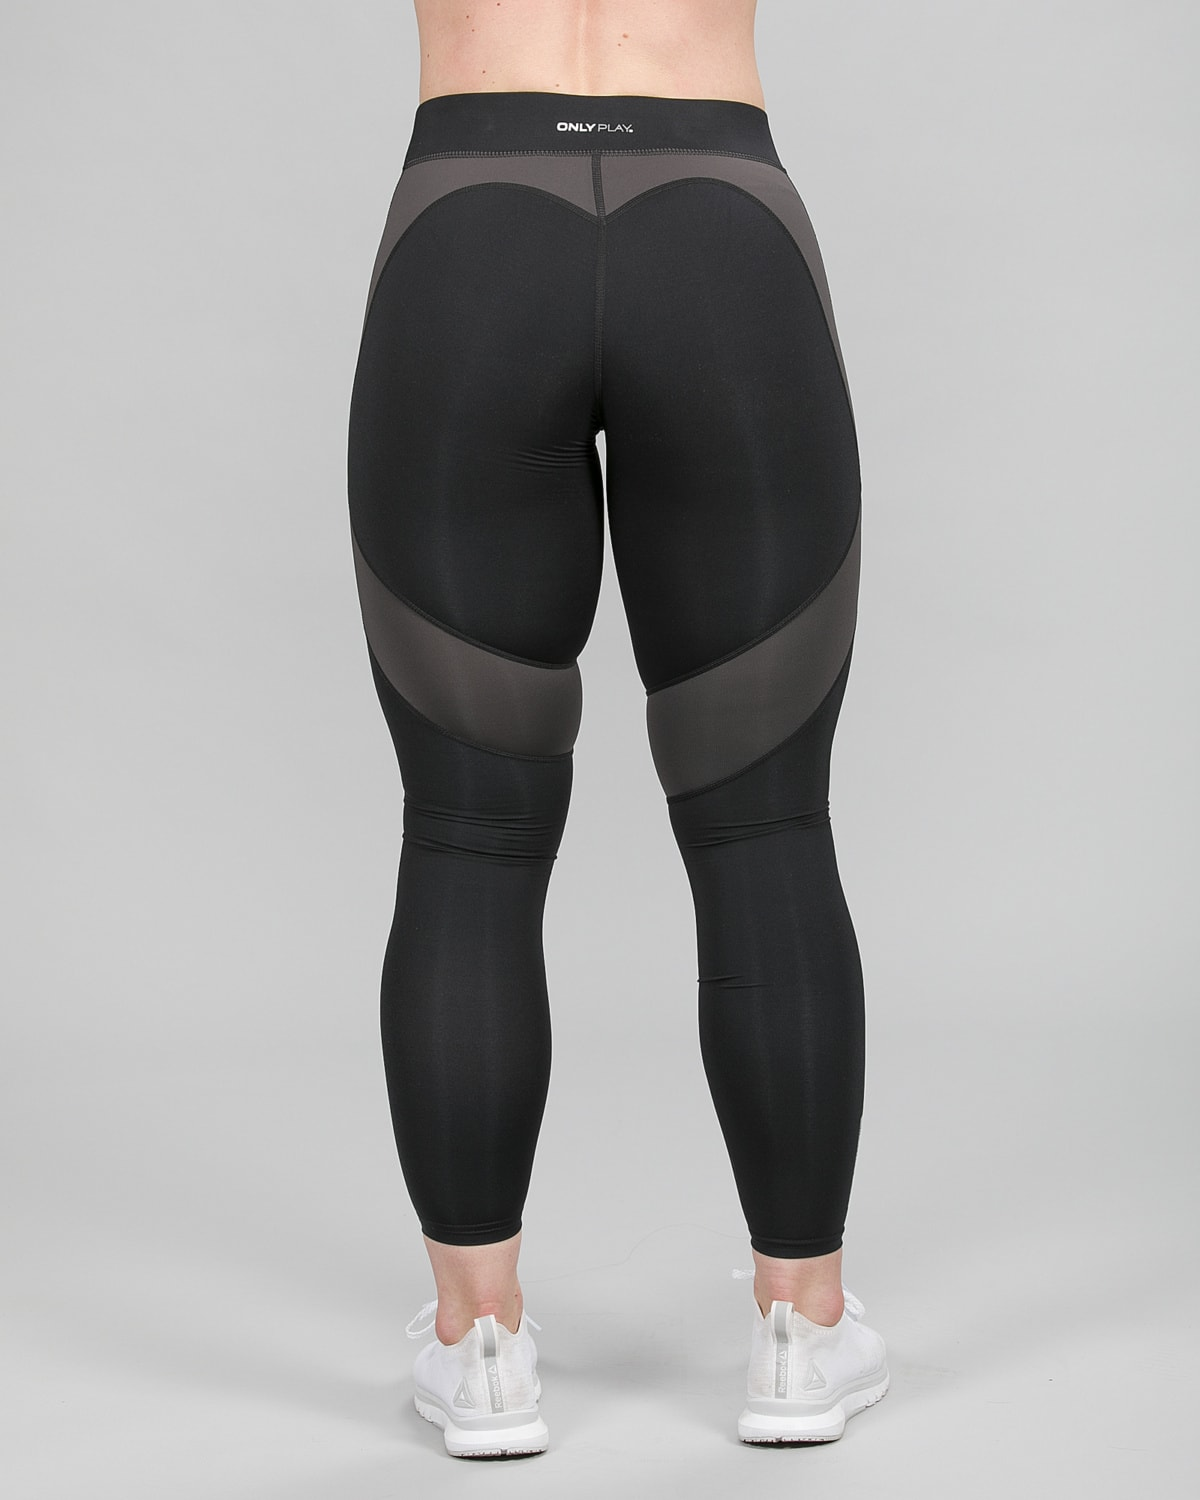 Only Play Zeida Shape Up Tights 15148901 – Black d